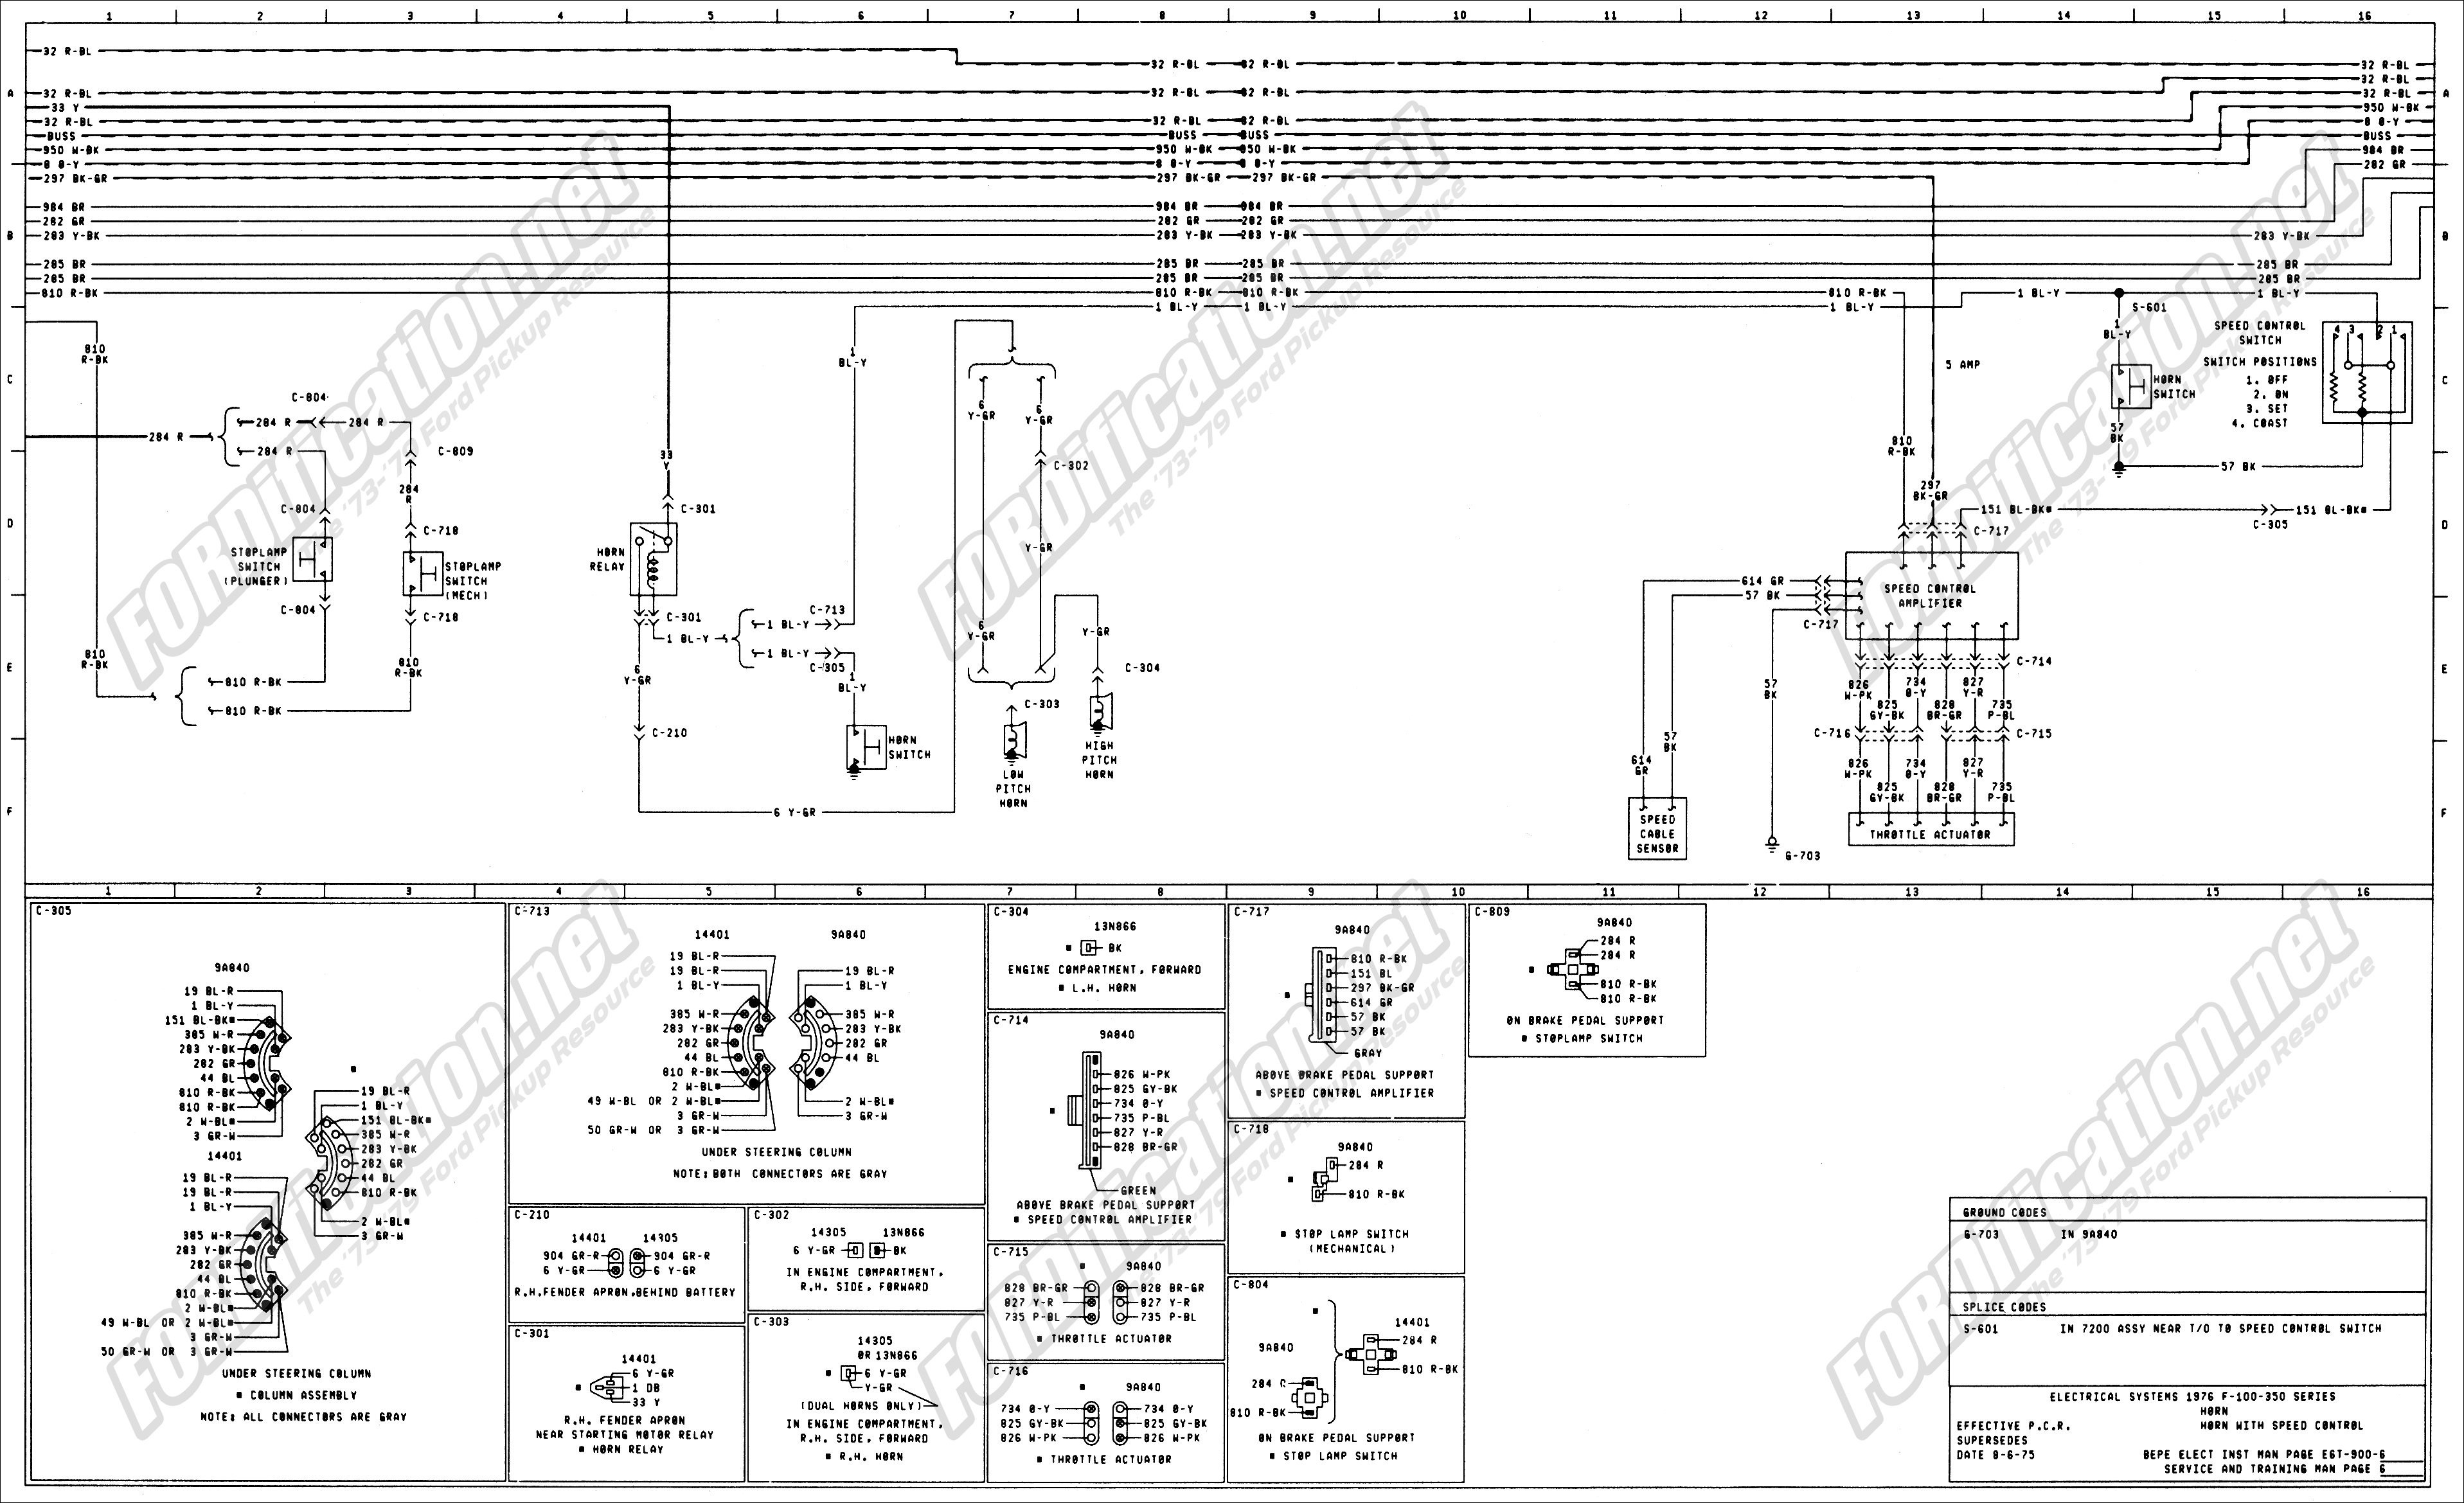 Ford Fog Light Wiring Diagram from mainetreasurechest.com